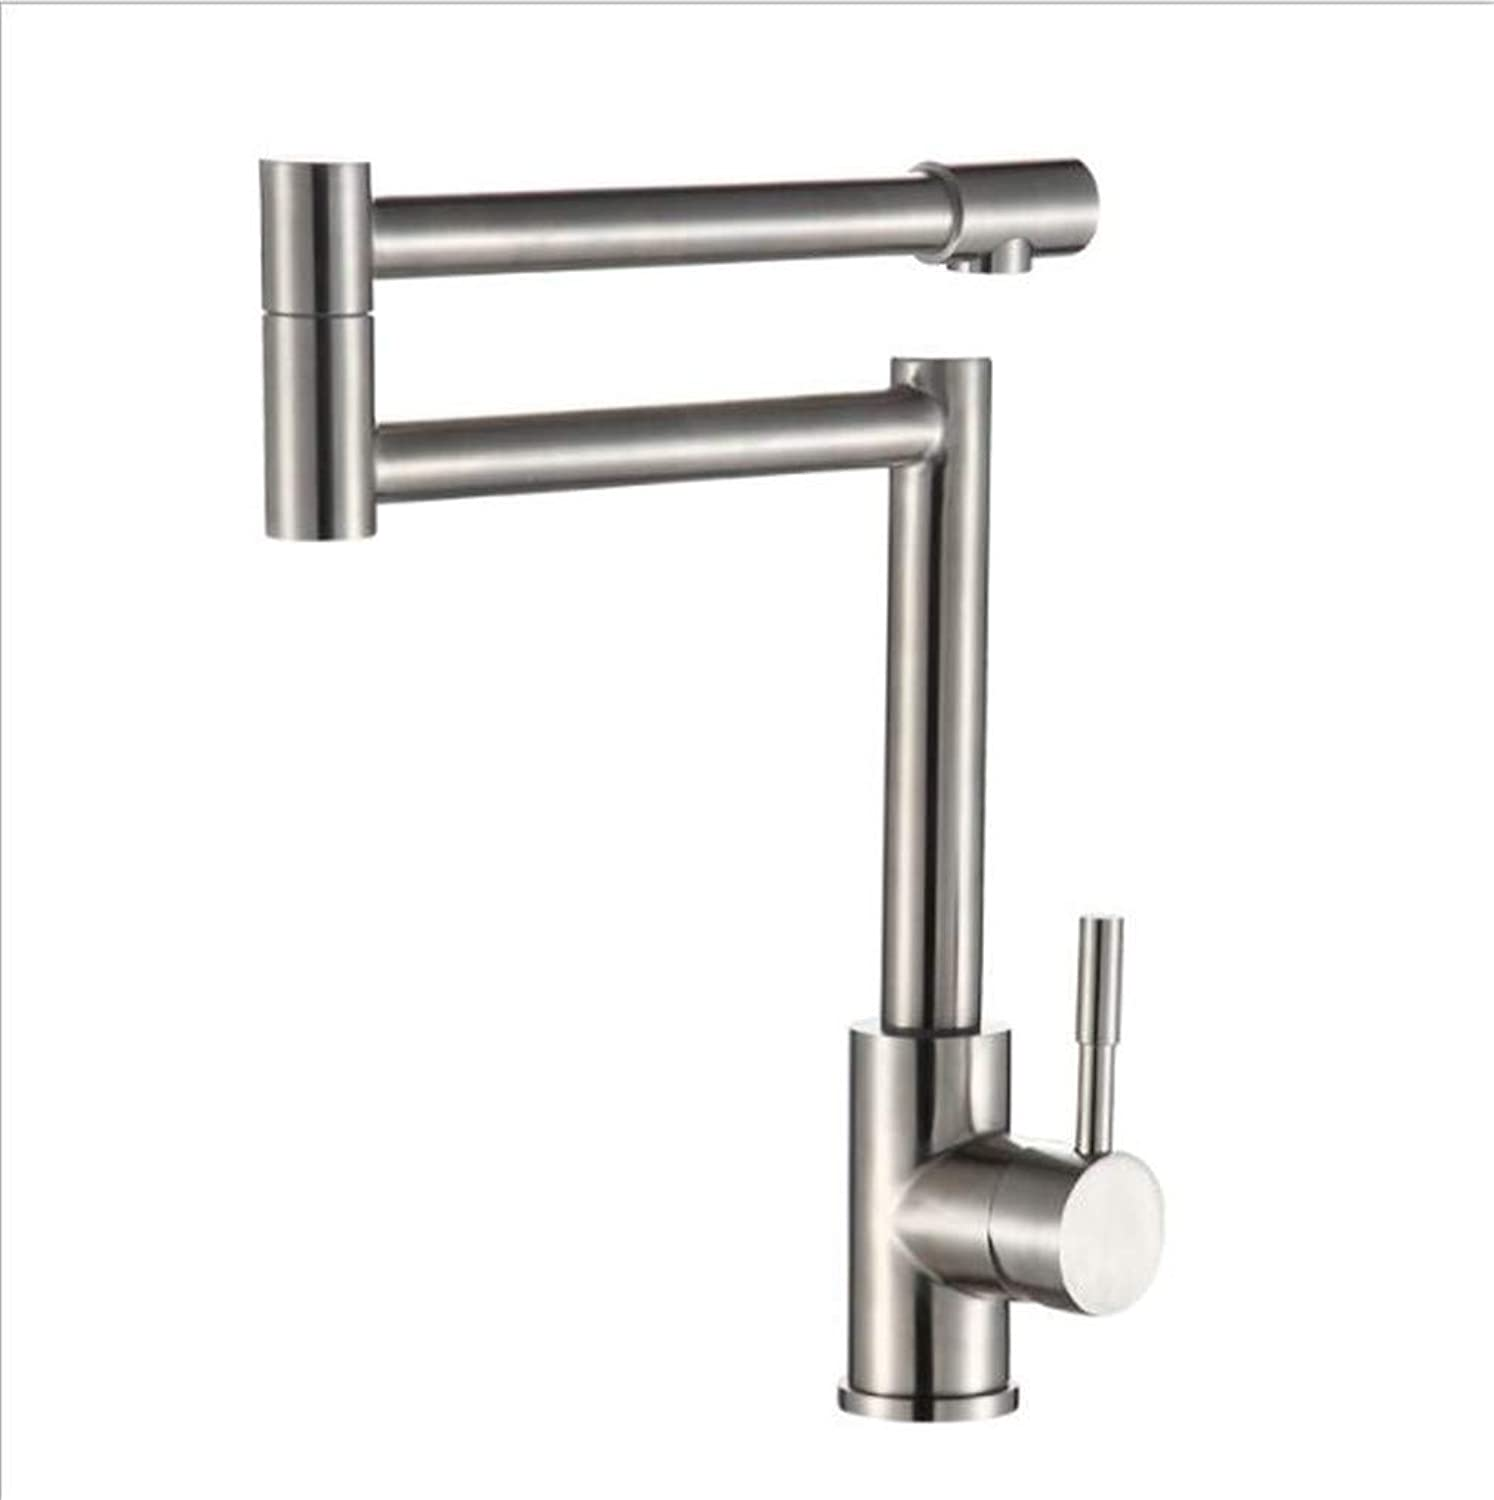 Bathroom Sink Basin Lever Mixer Tap Sus304 Stainless Steel Kitchen Universal Faucet Folding Pipe Deformation Pipe Multidirectional Head